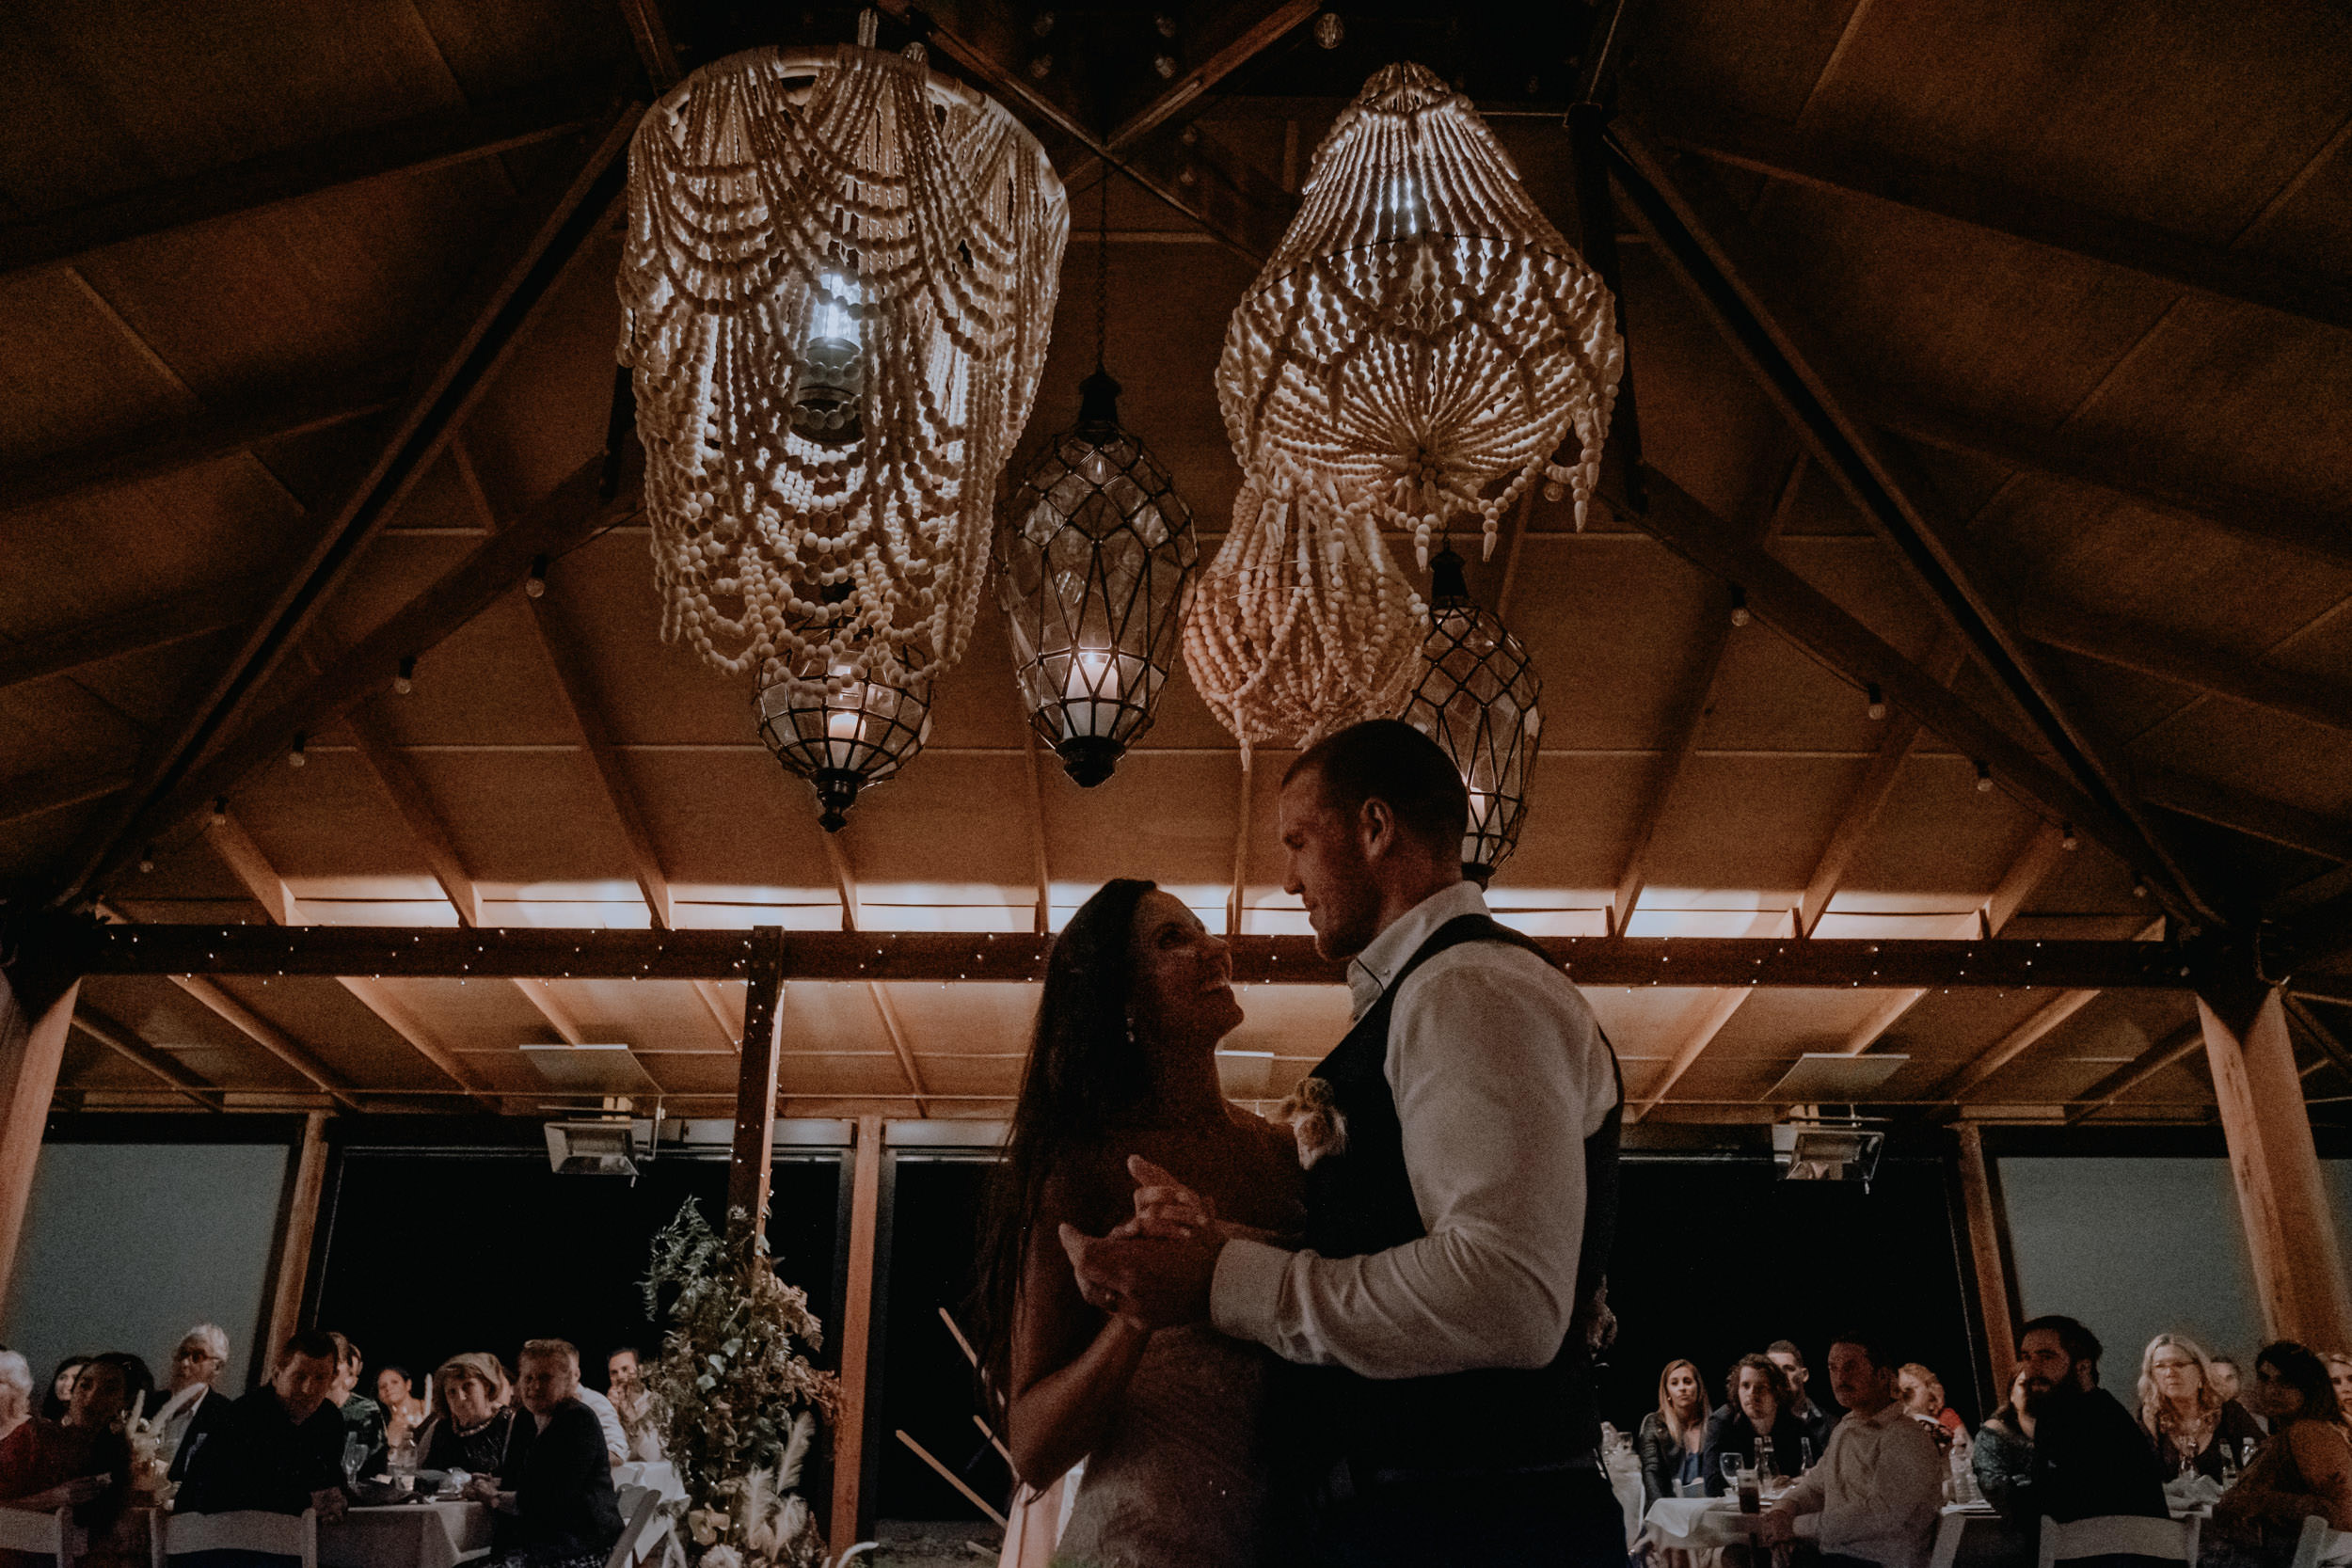 Bride & Groom's first dance during their wedding reception